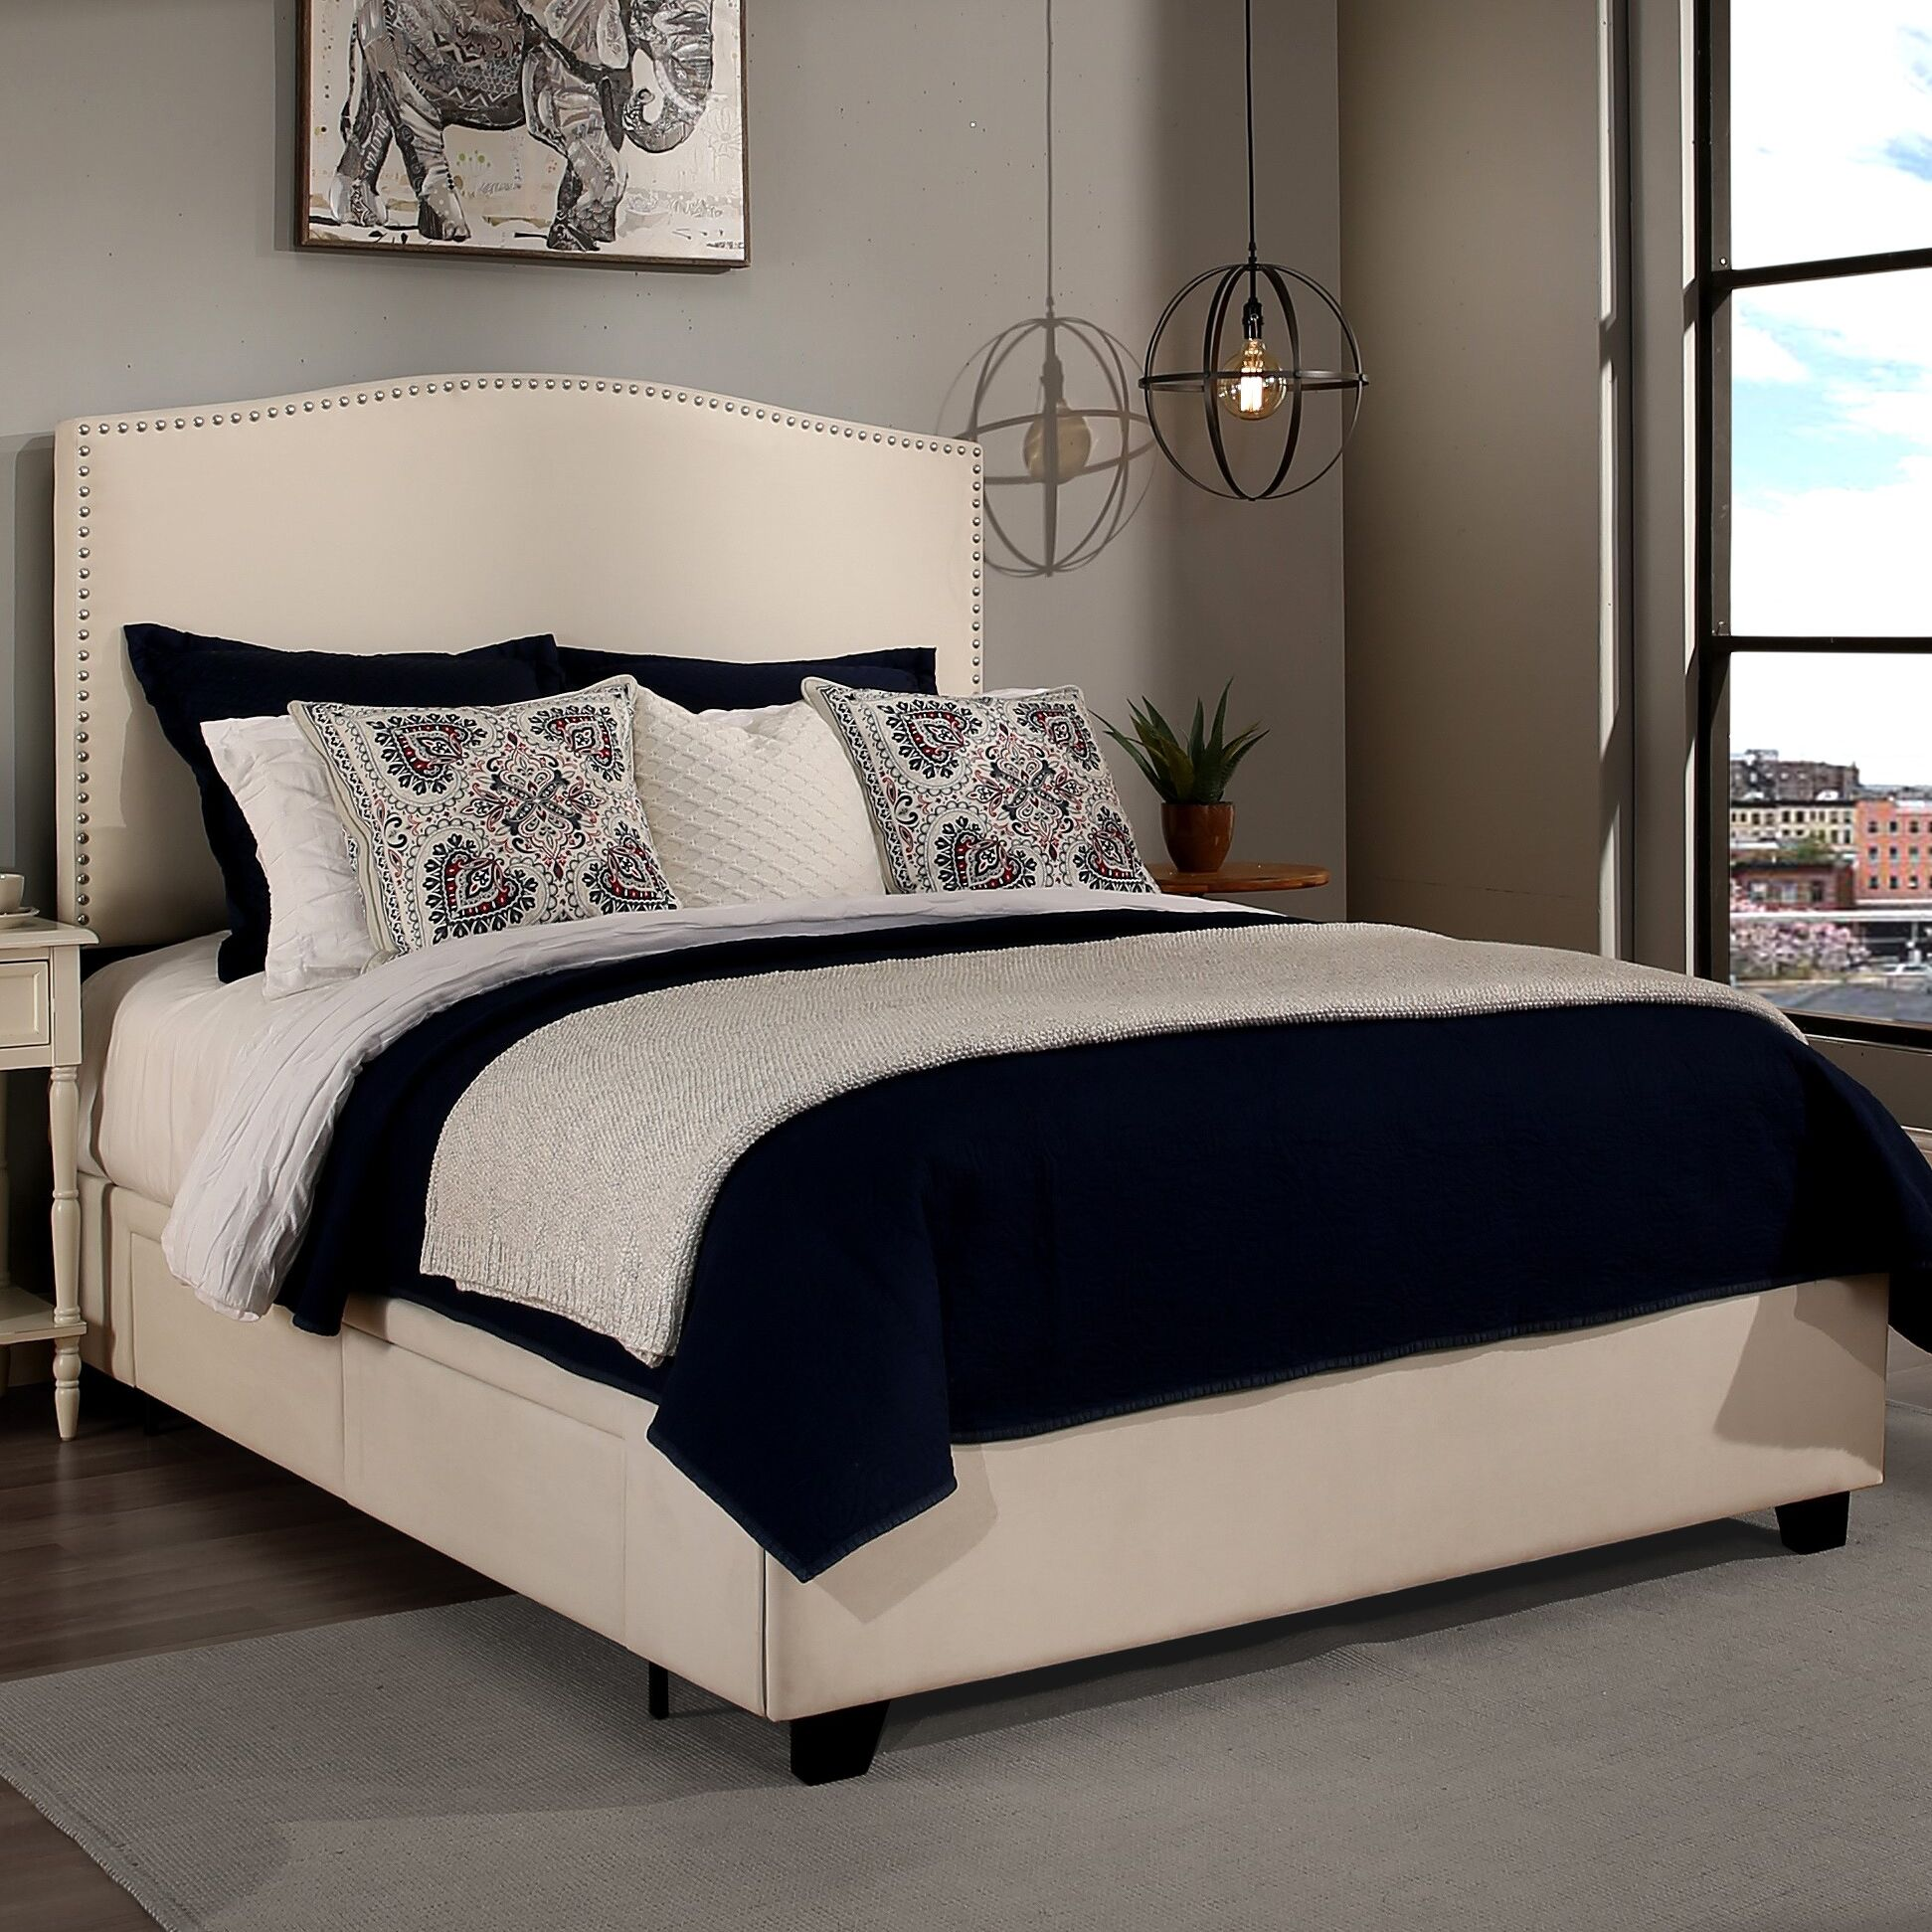 Almodovar Upholstered Storage Platform Bed Size: Eastern King, Color: Ivory